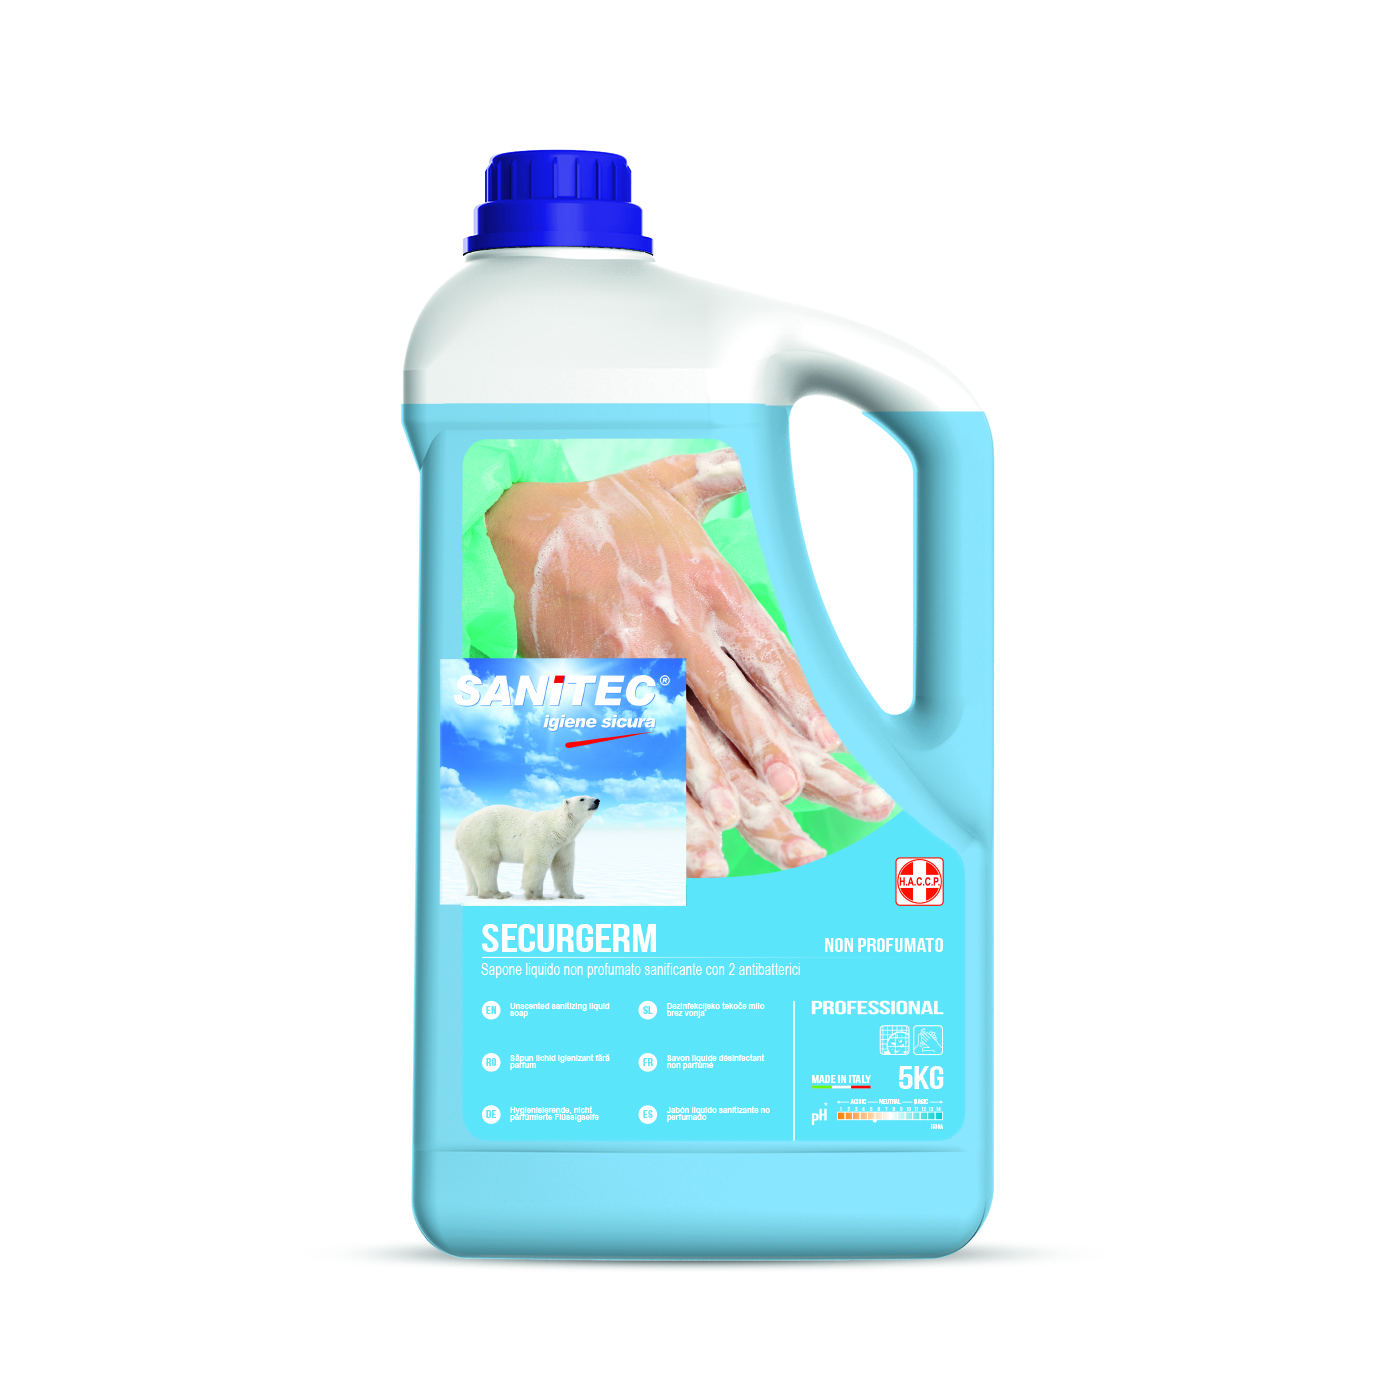 Securgerm Anti-Bac Liquid Soap